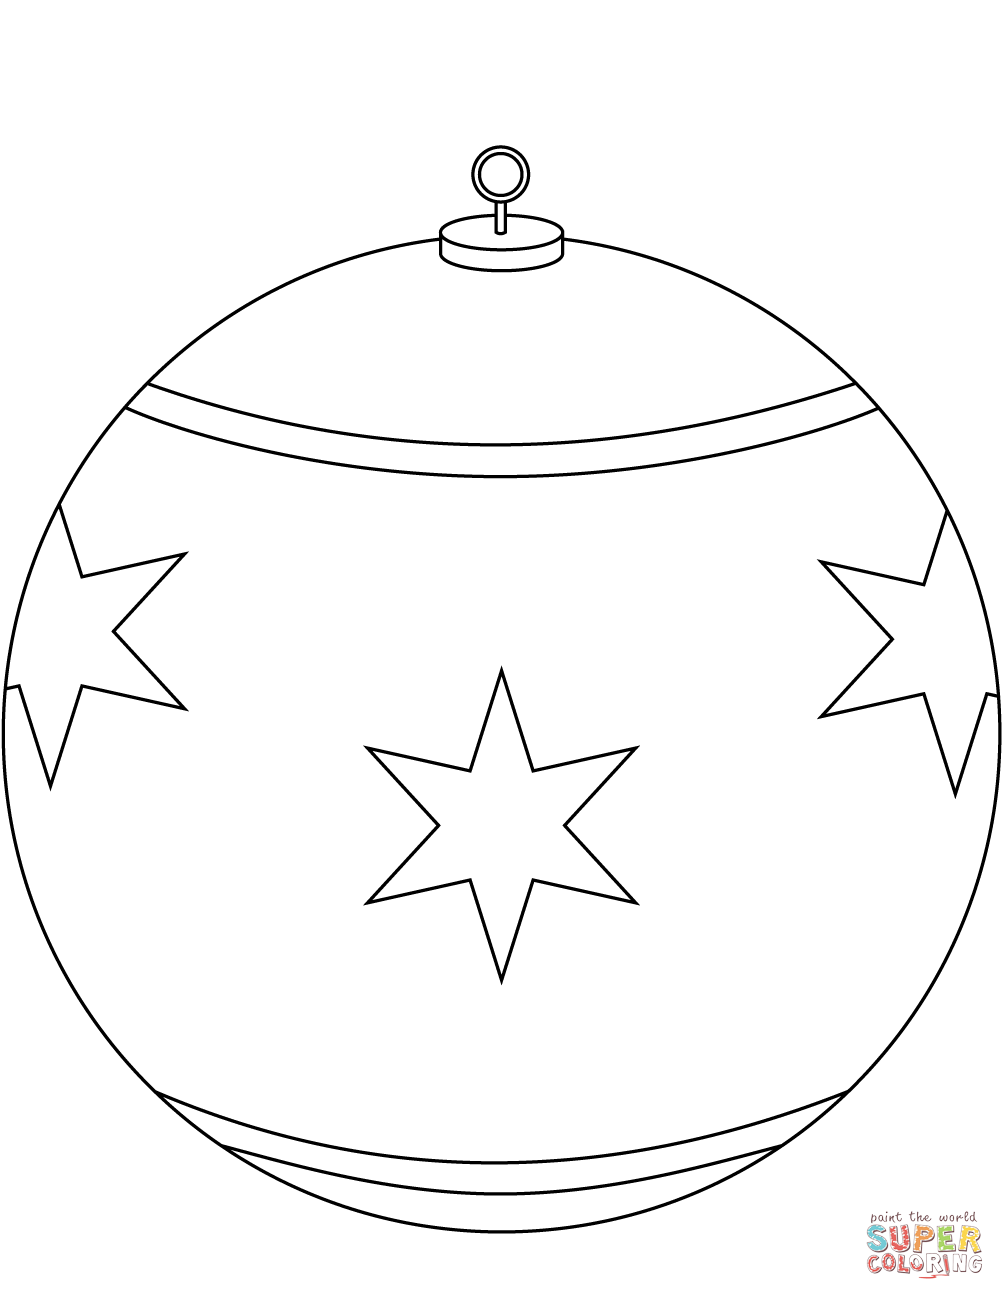 Round Christmas Ornament Coloring Page Free Printable Coloring Pages